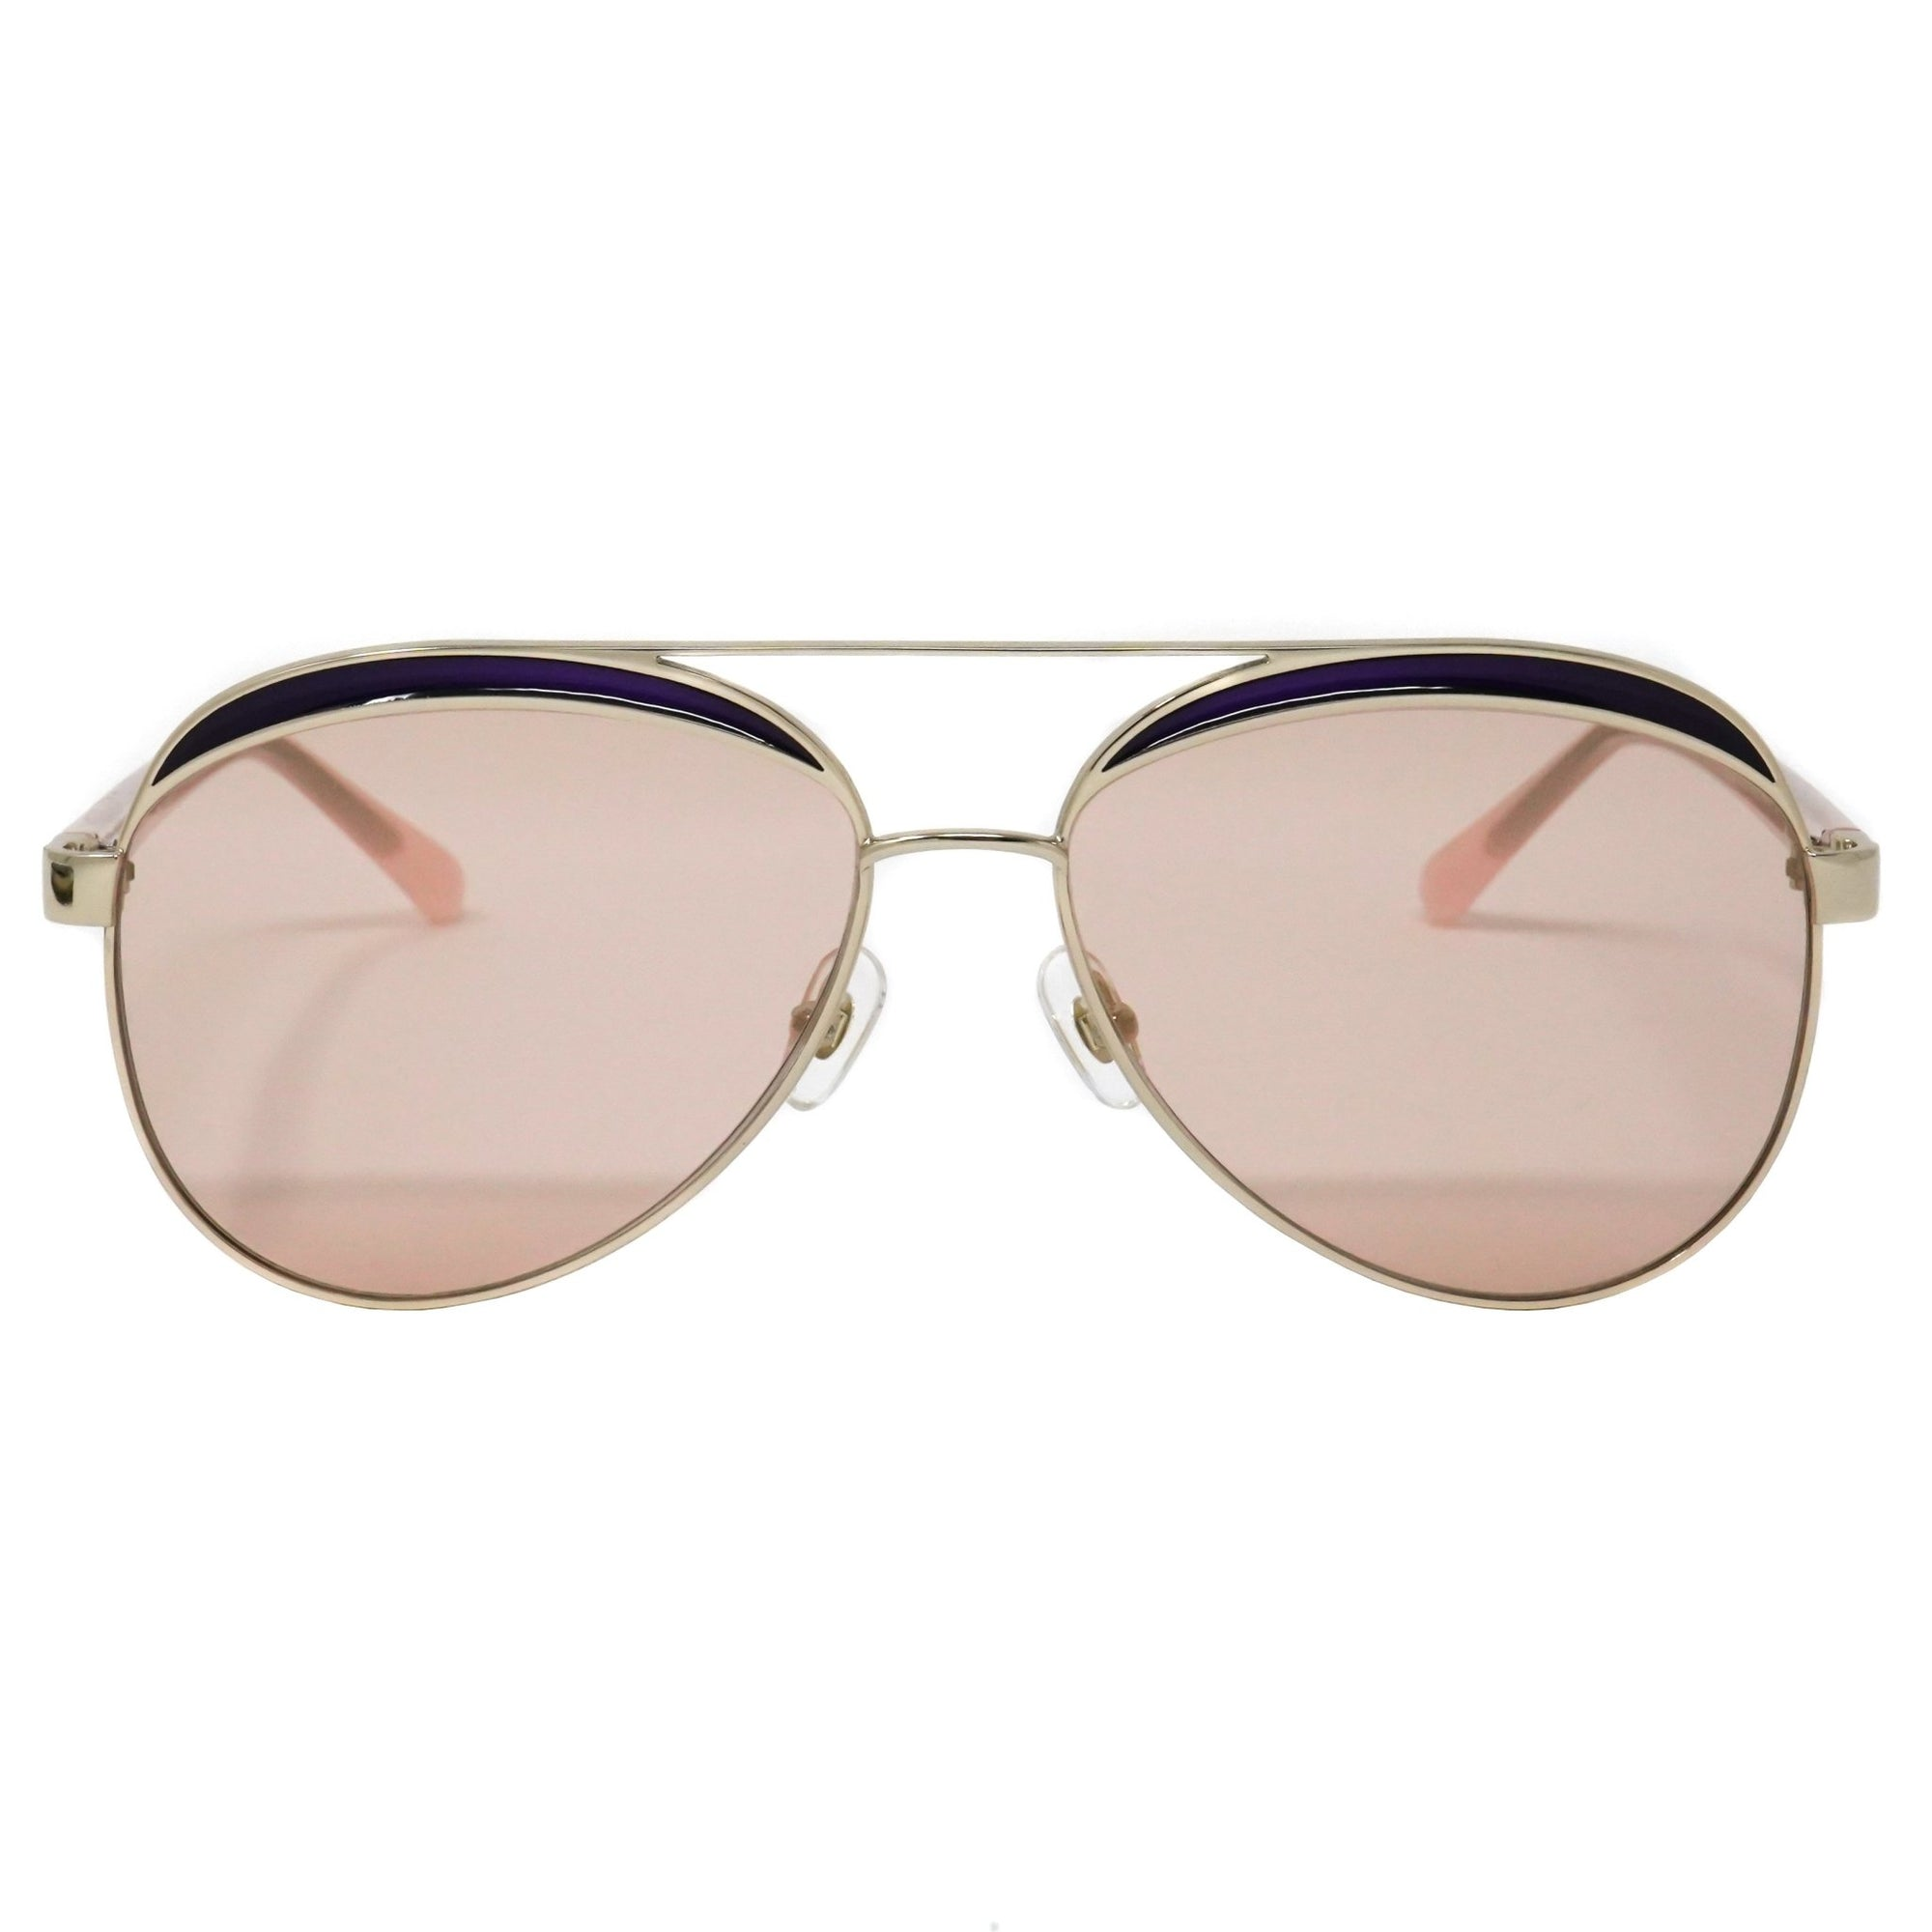 NO 21 Women's Sunglasses Rose Gold and Peach